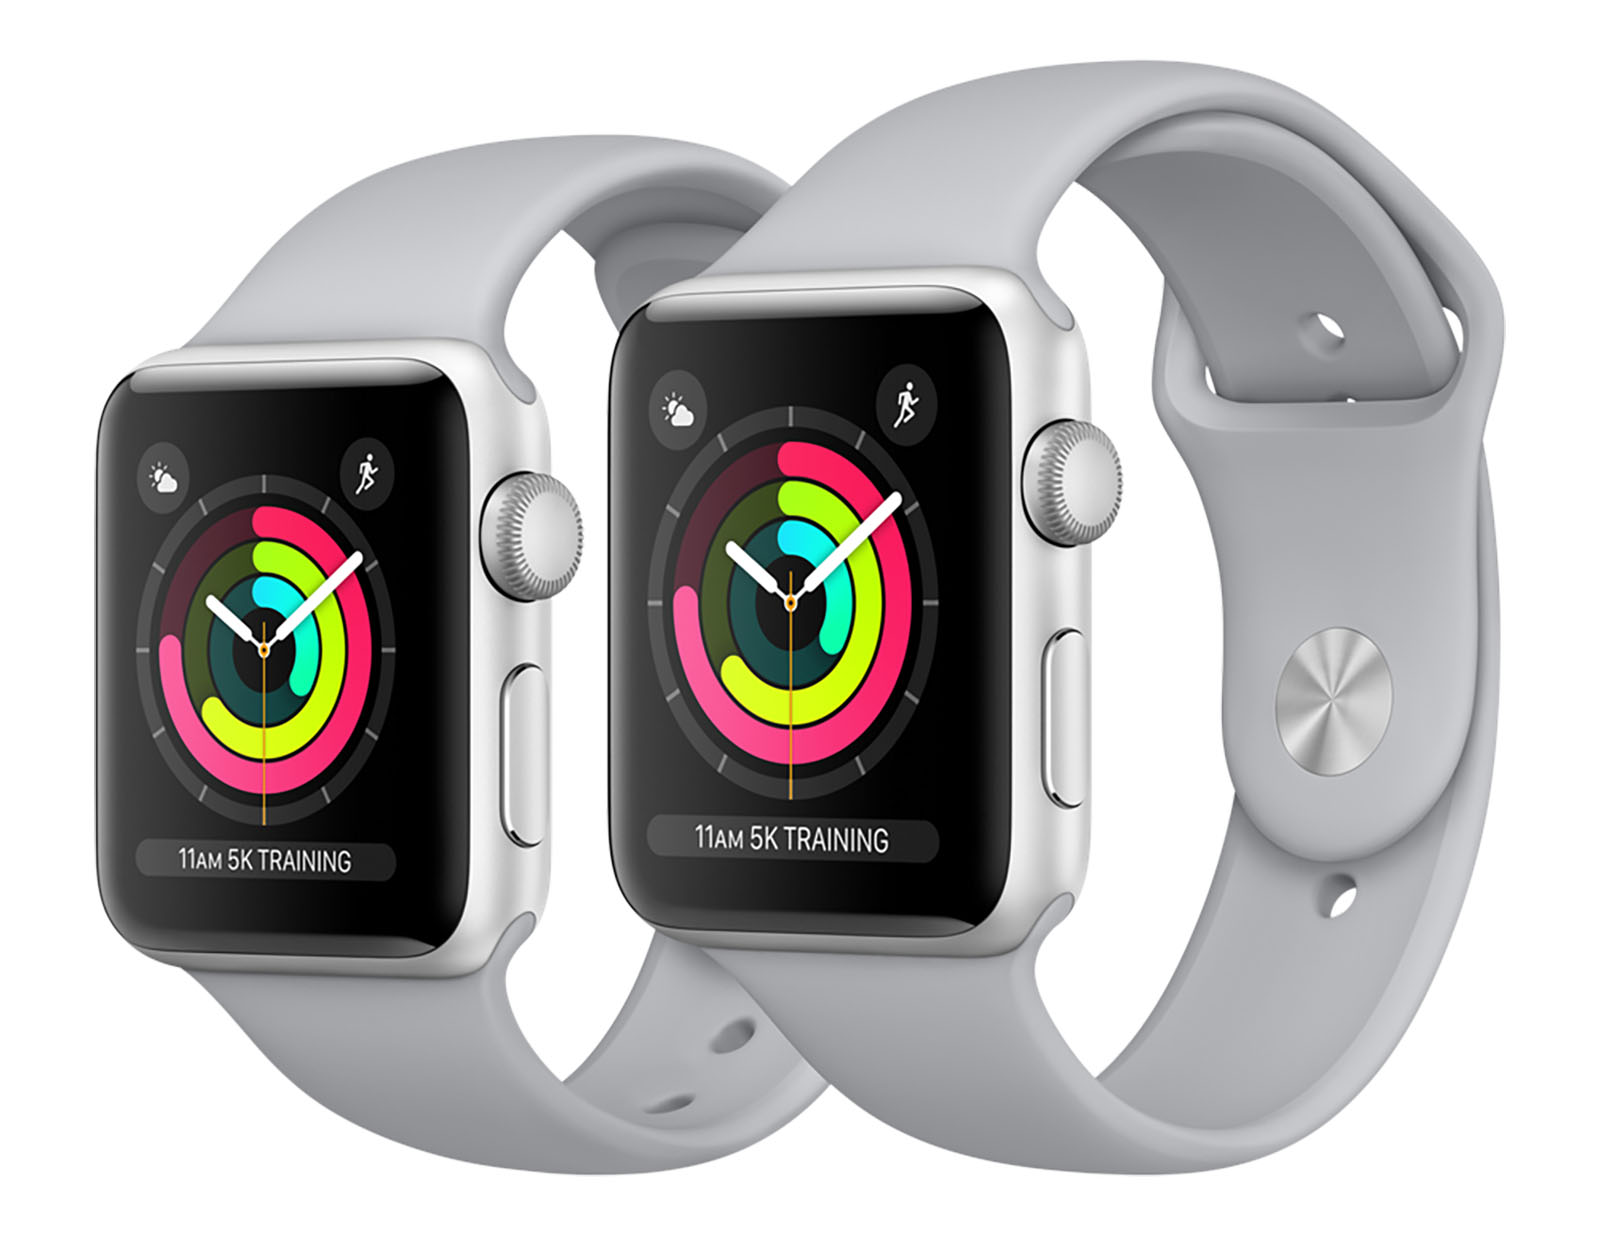 info for 9cf97 c9110 Apple Watch Series 3 (GPS Only)| AppleInsider